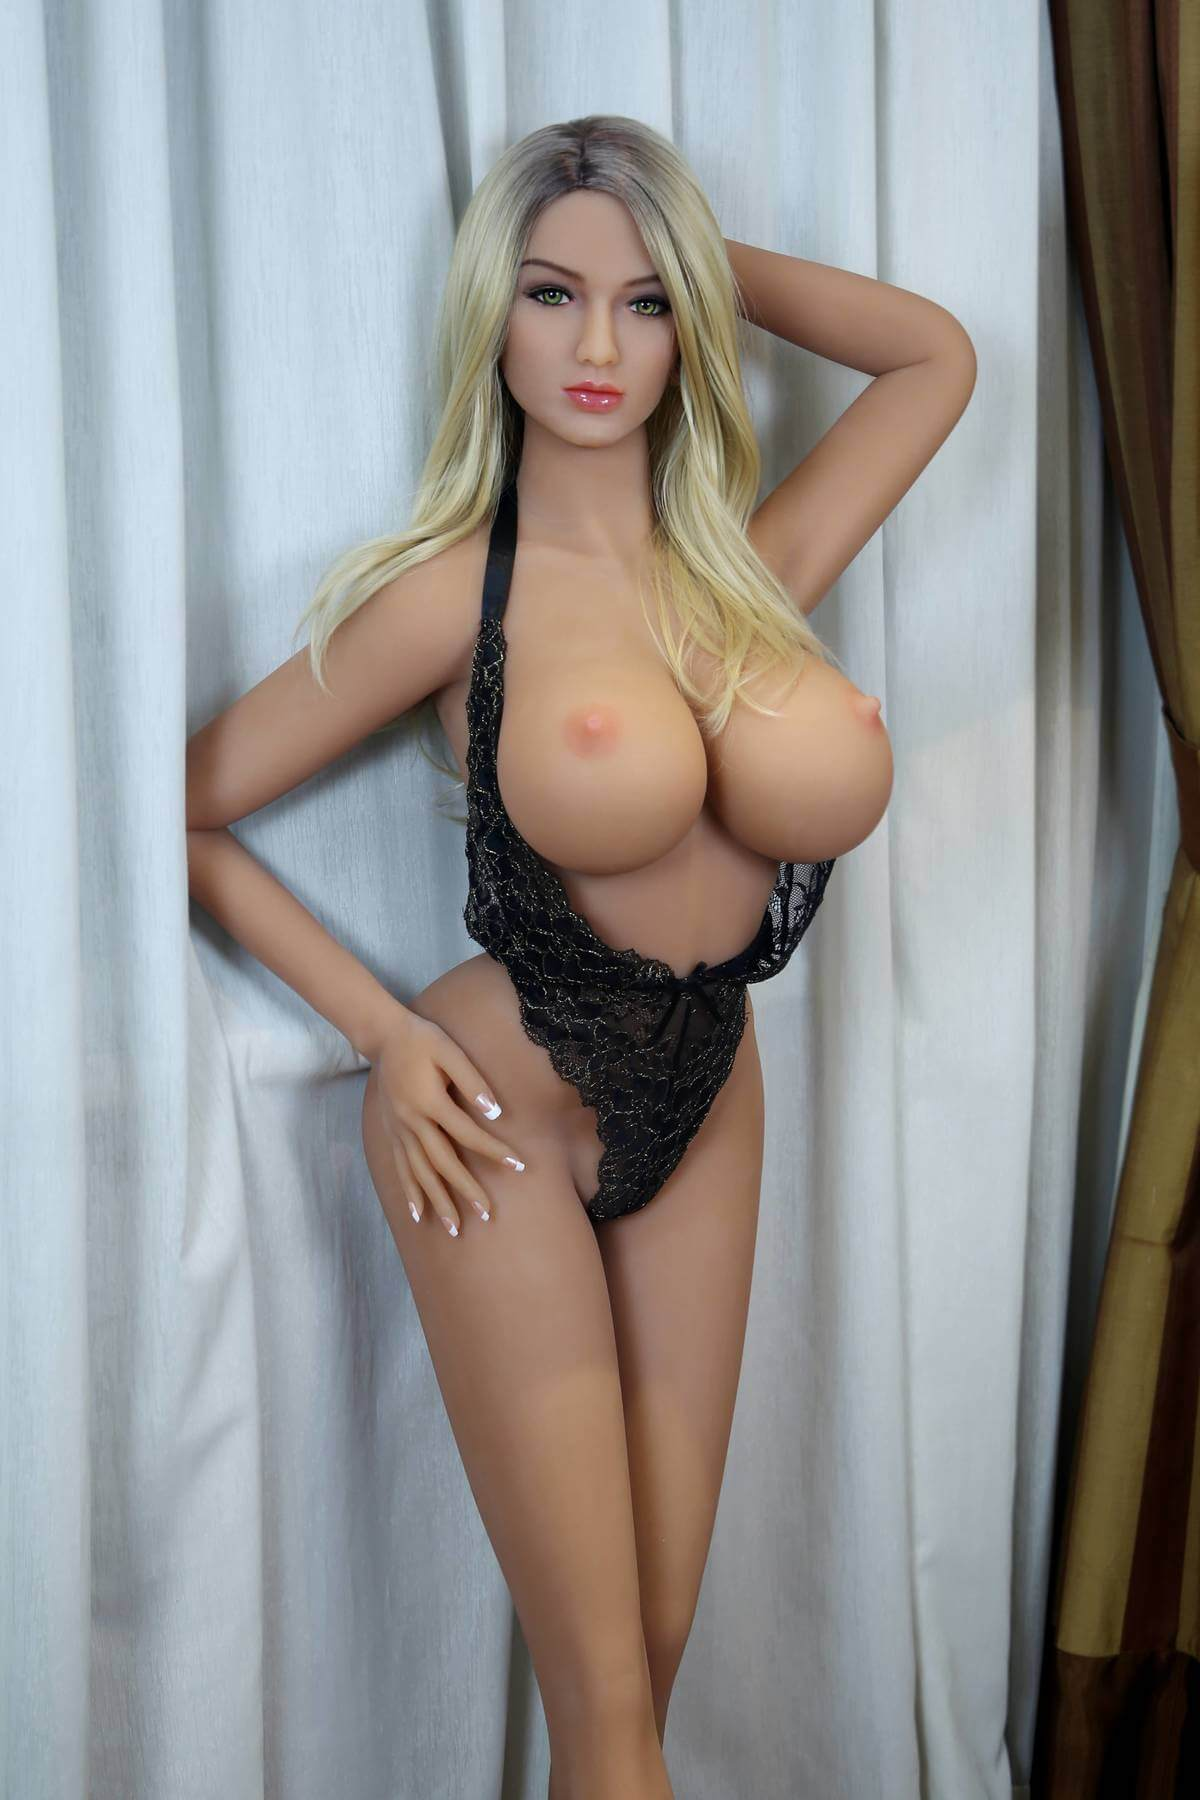 Big Butt Sex Doll - Dorothy